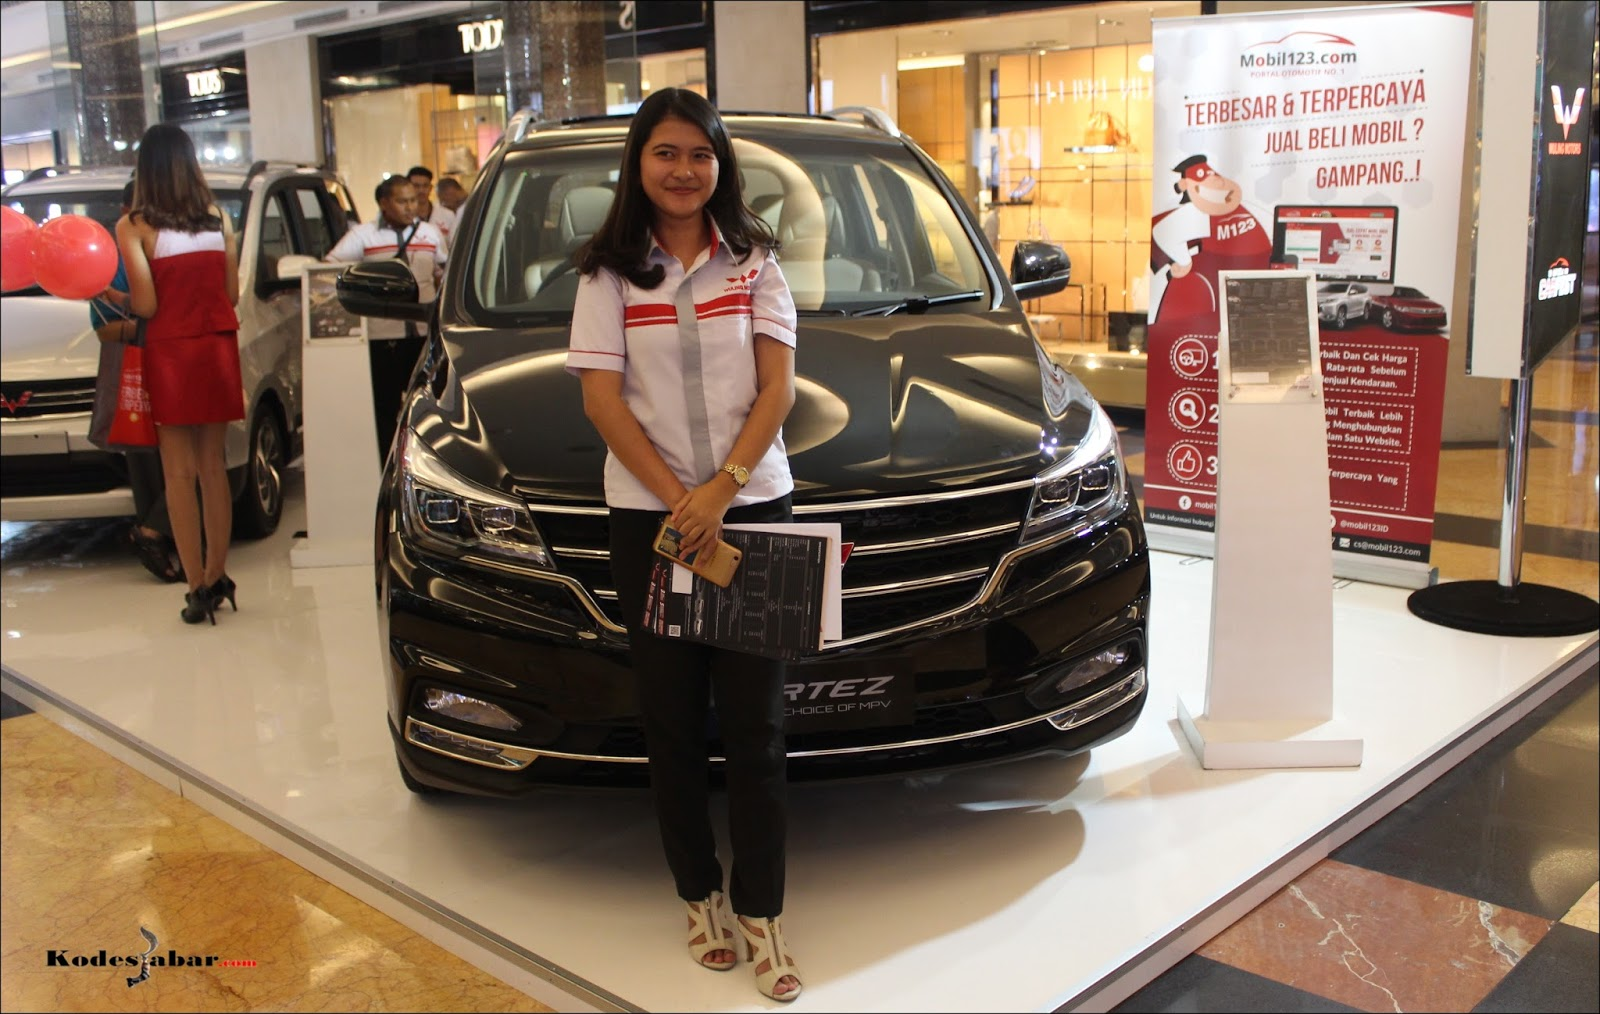 Booth Mobil123 Carfest Wuling